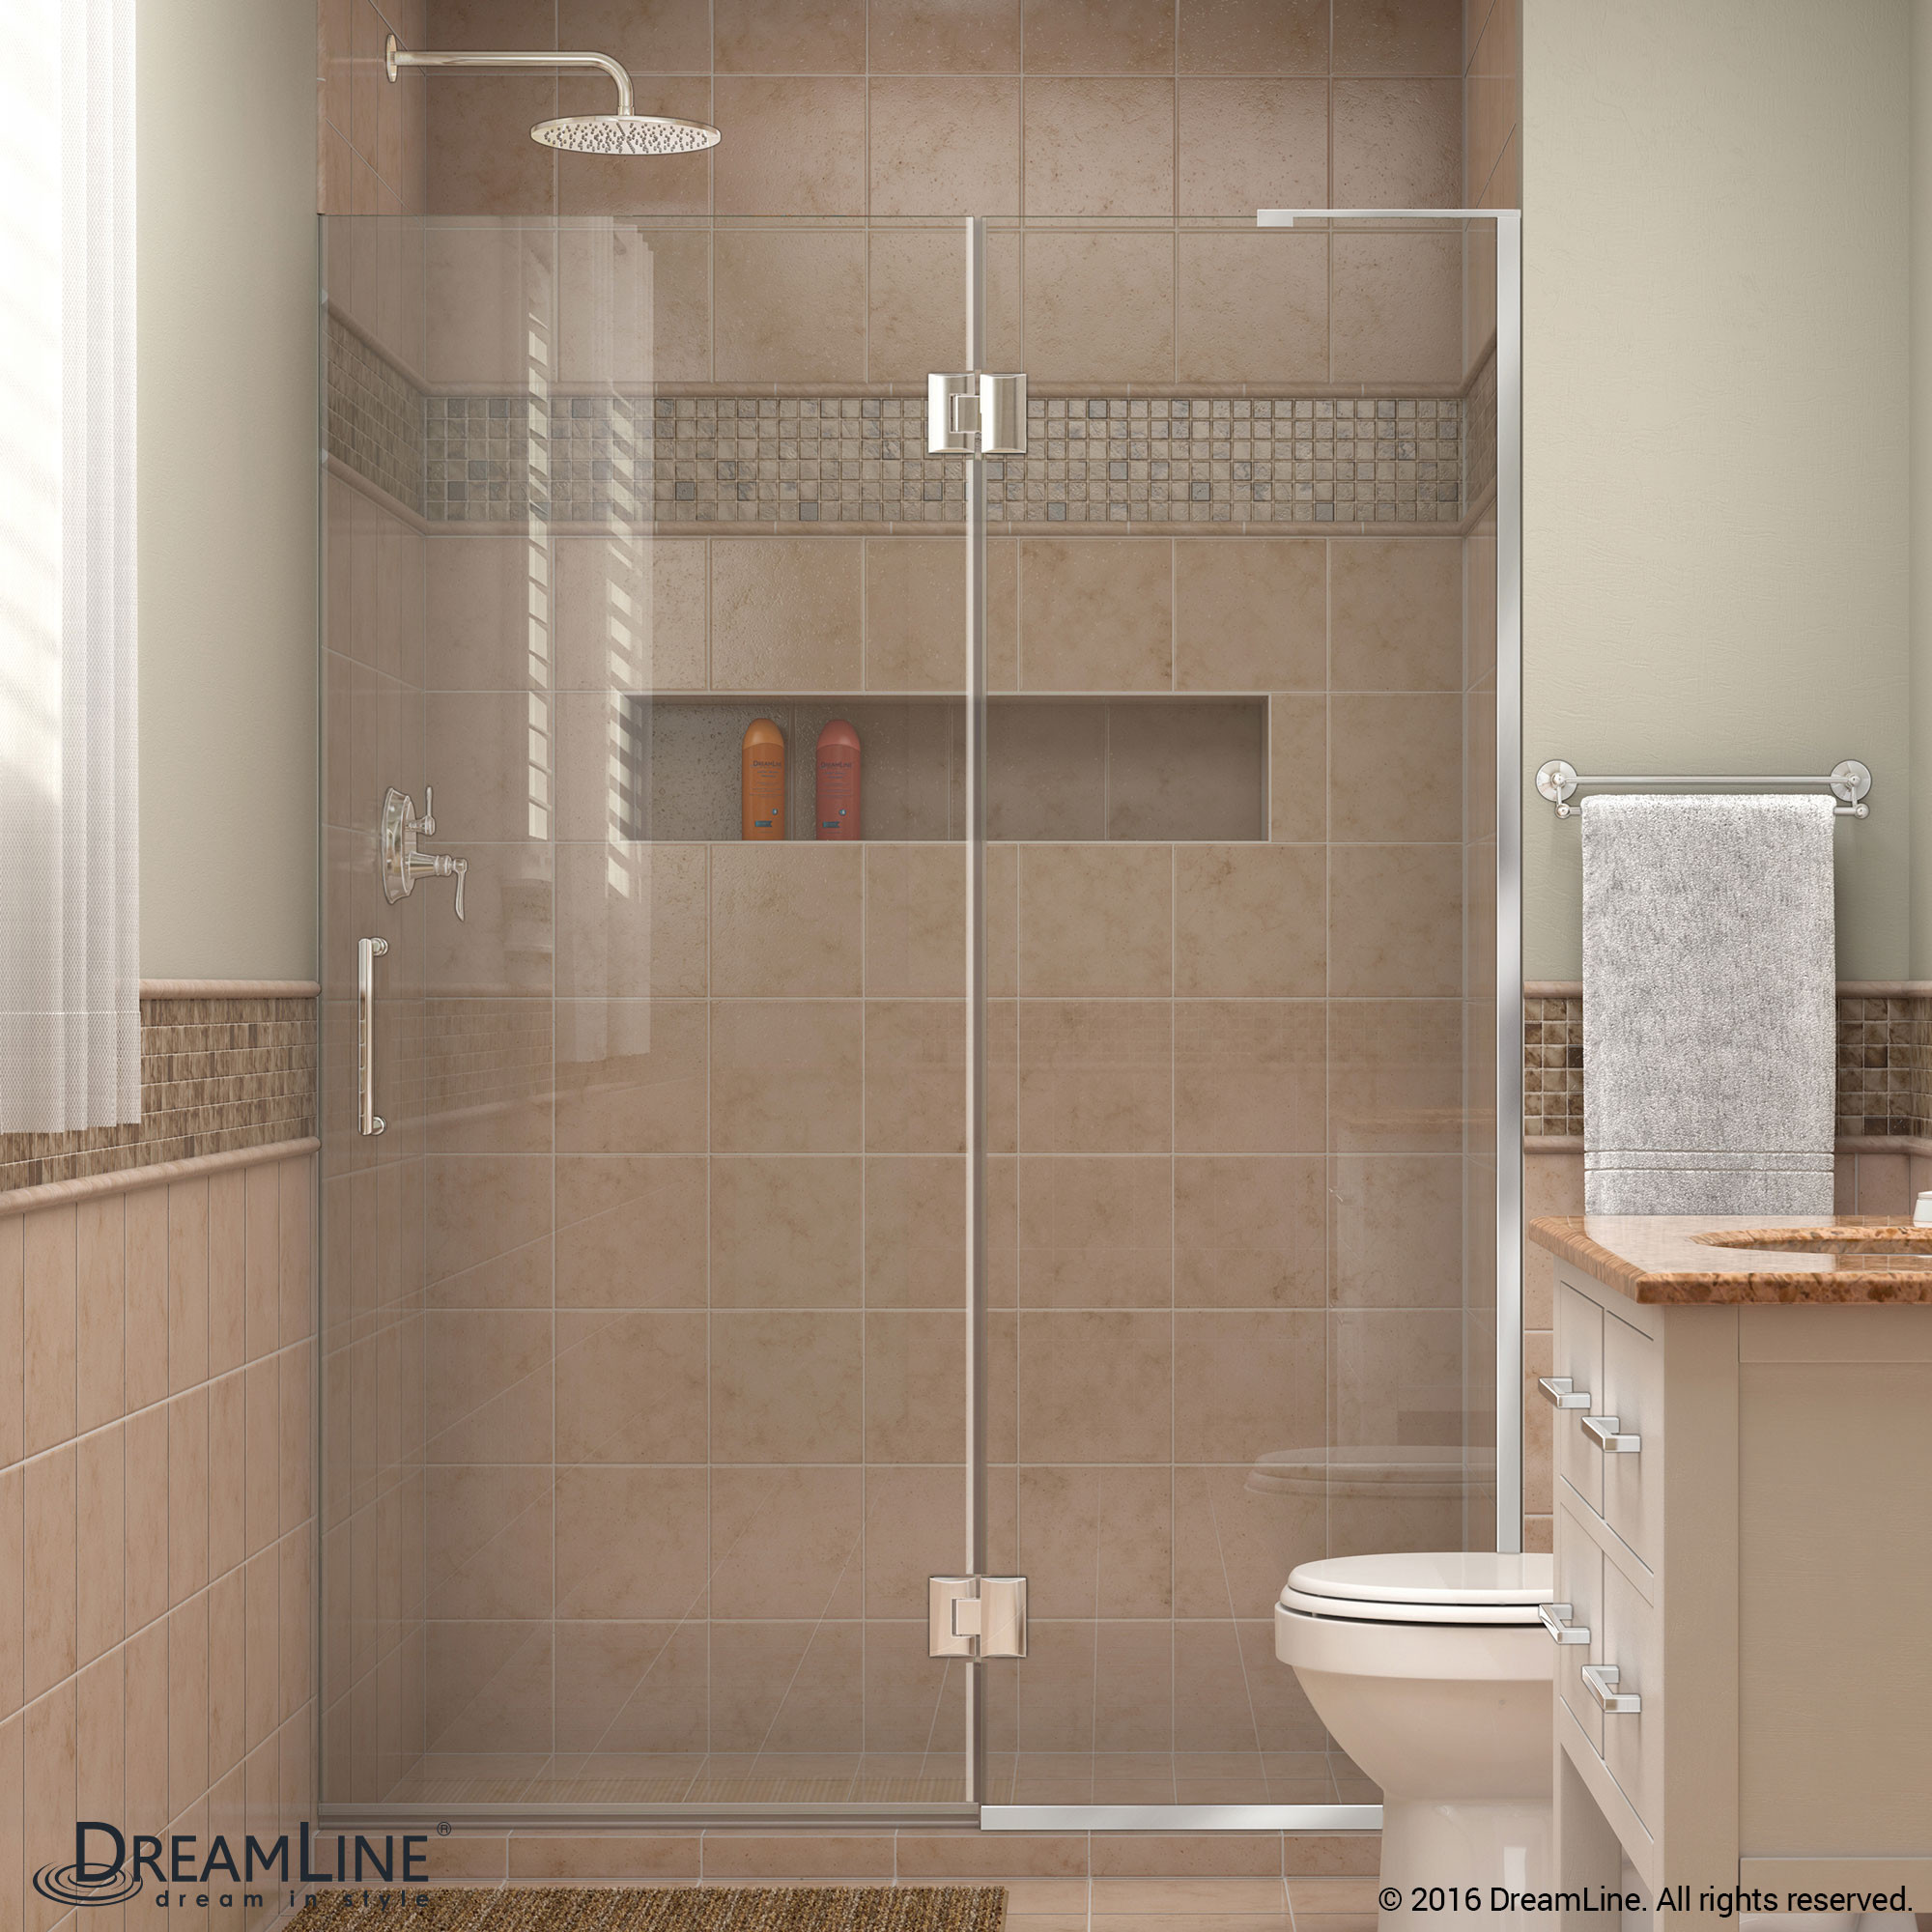 DreamLine D32972R-01 Chrome Unidoor-X Hinged Shower Door With Right-wall Bracket